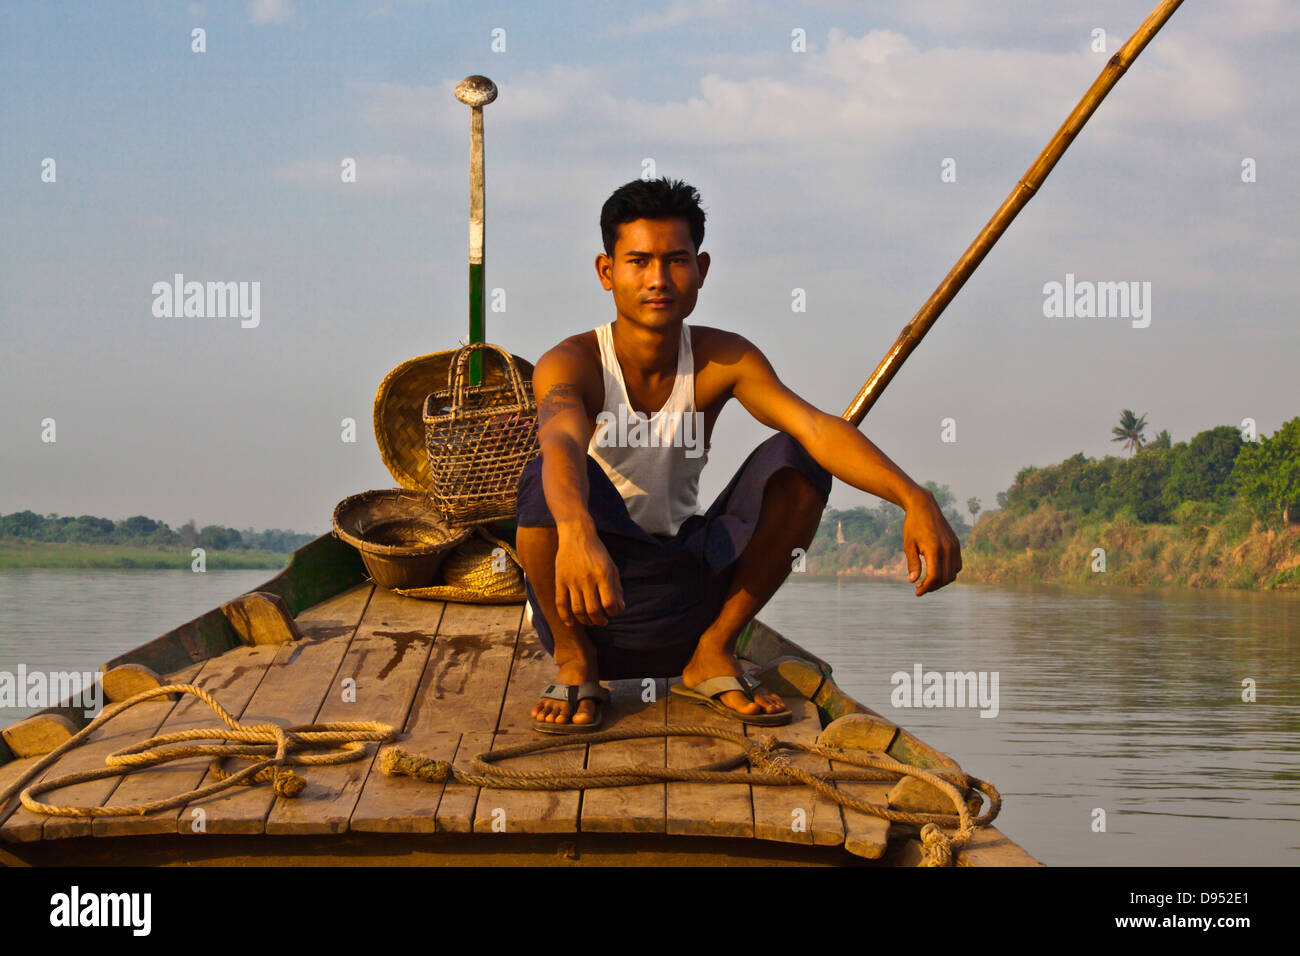 A BOATMAN on the way to INWA which served as the Burmese Kingdoms capital for 400 years - MYANMAR - Stock Image